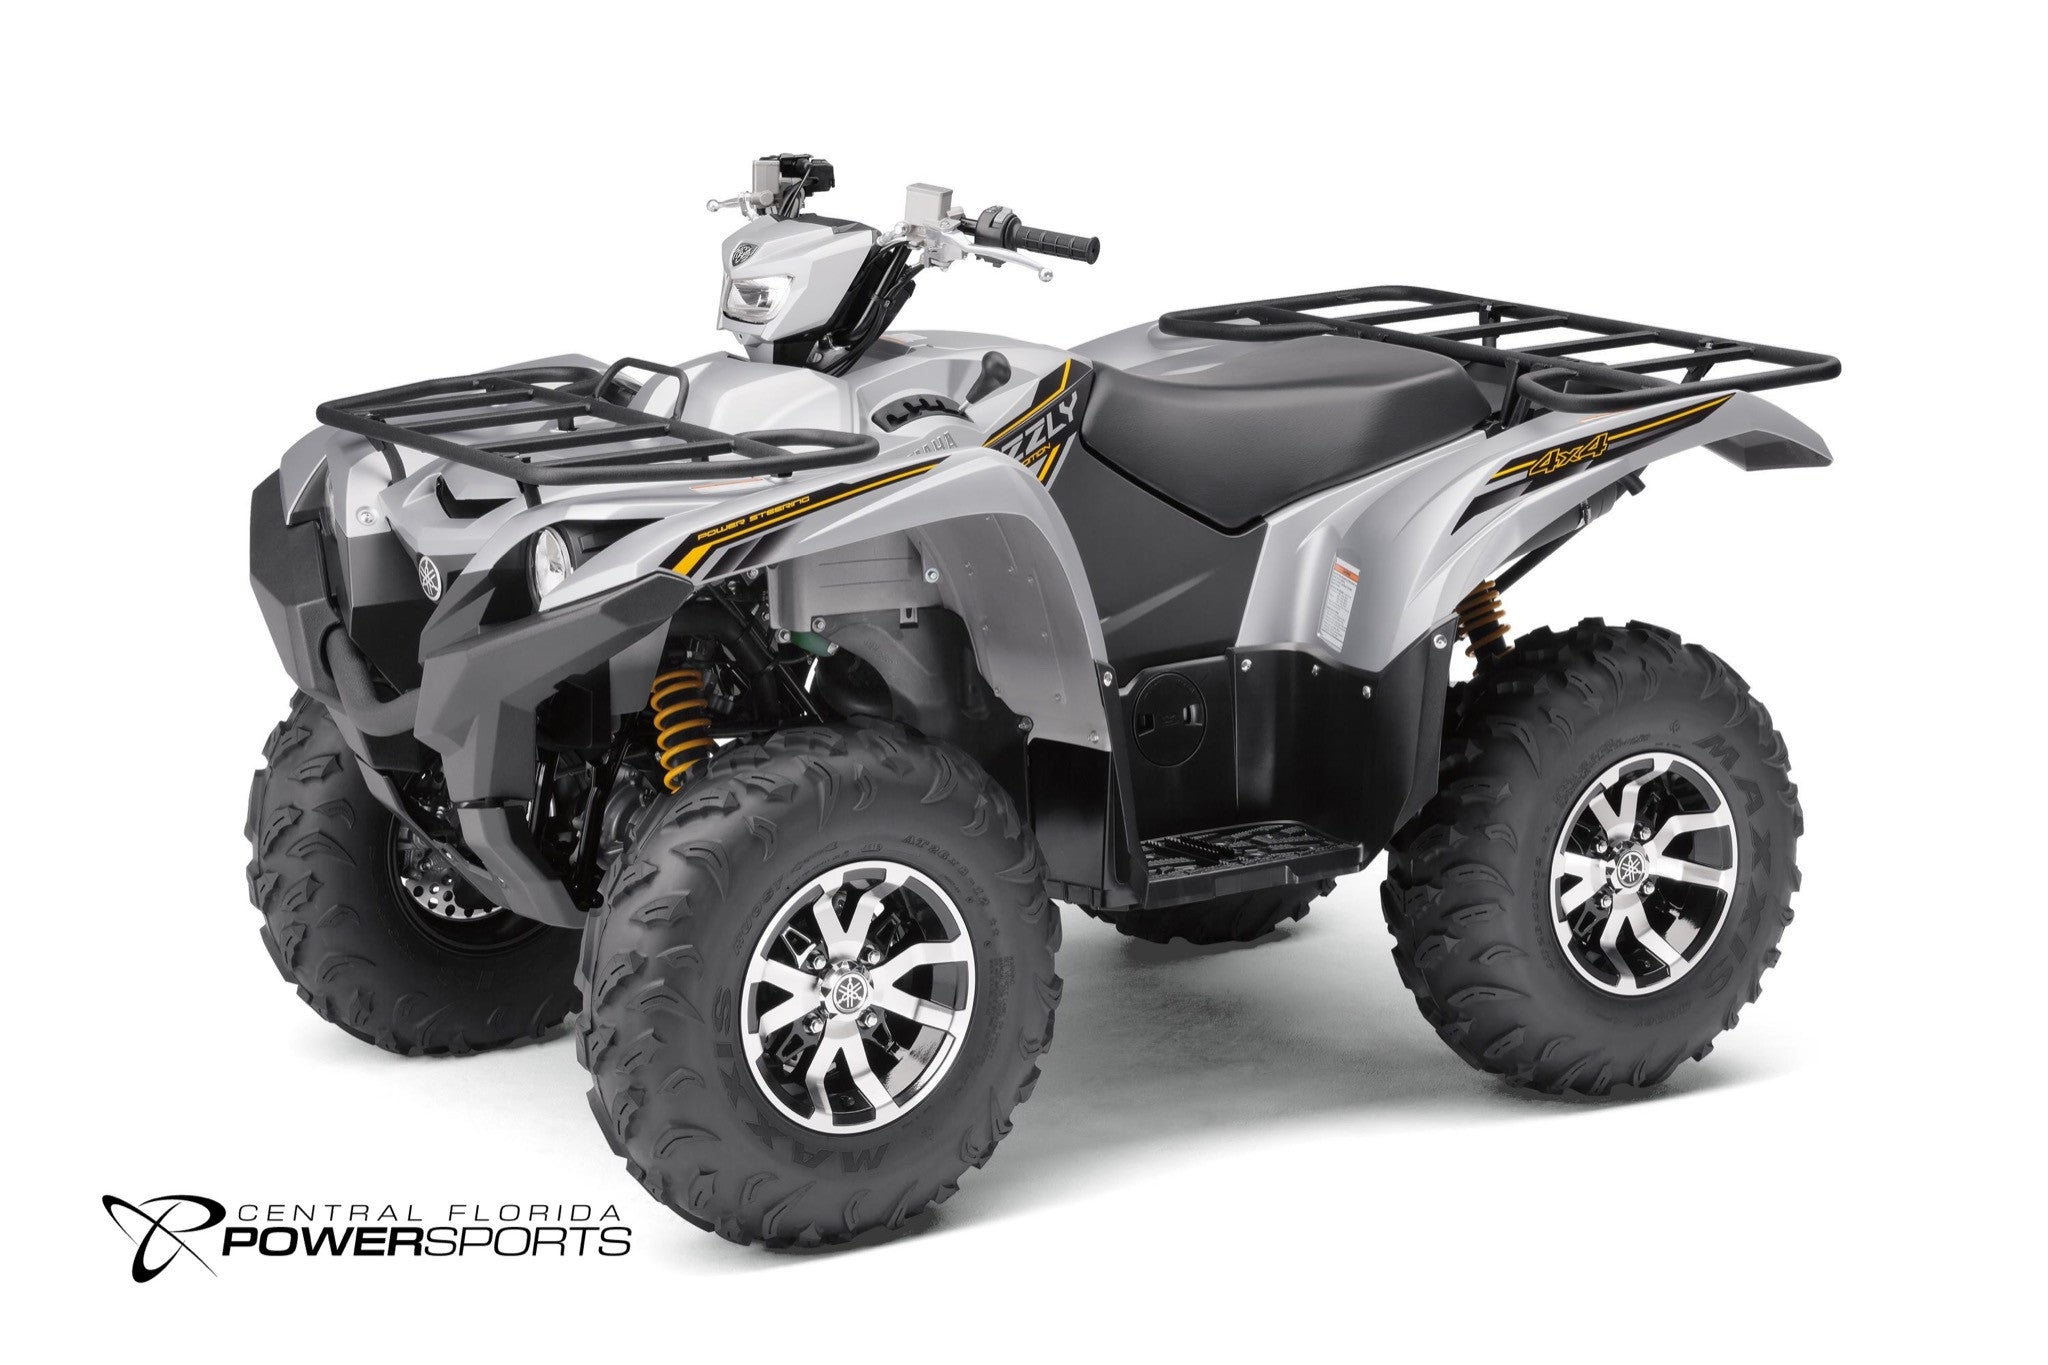 2017 yamaha grizzly 700 eps special edition se 4wd